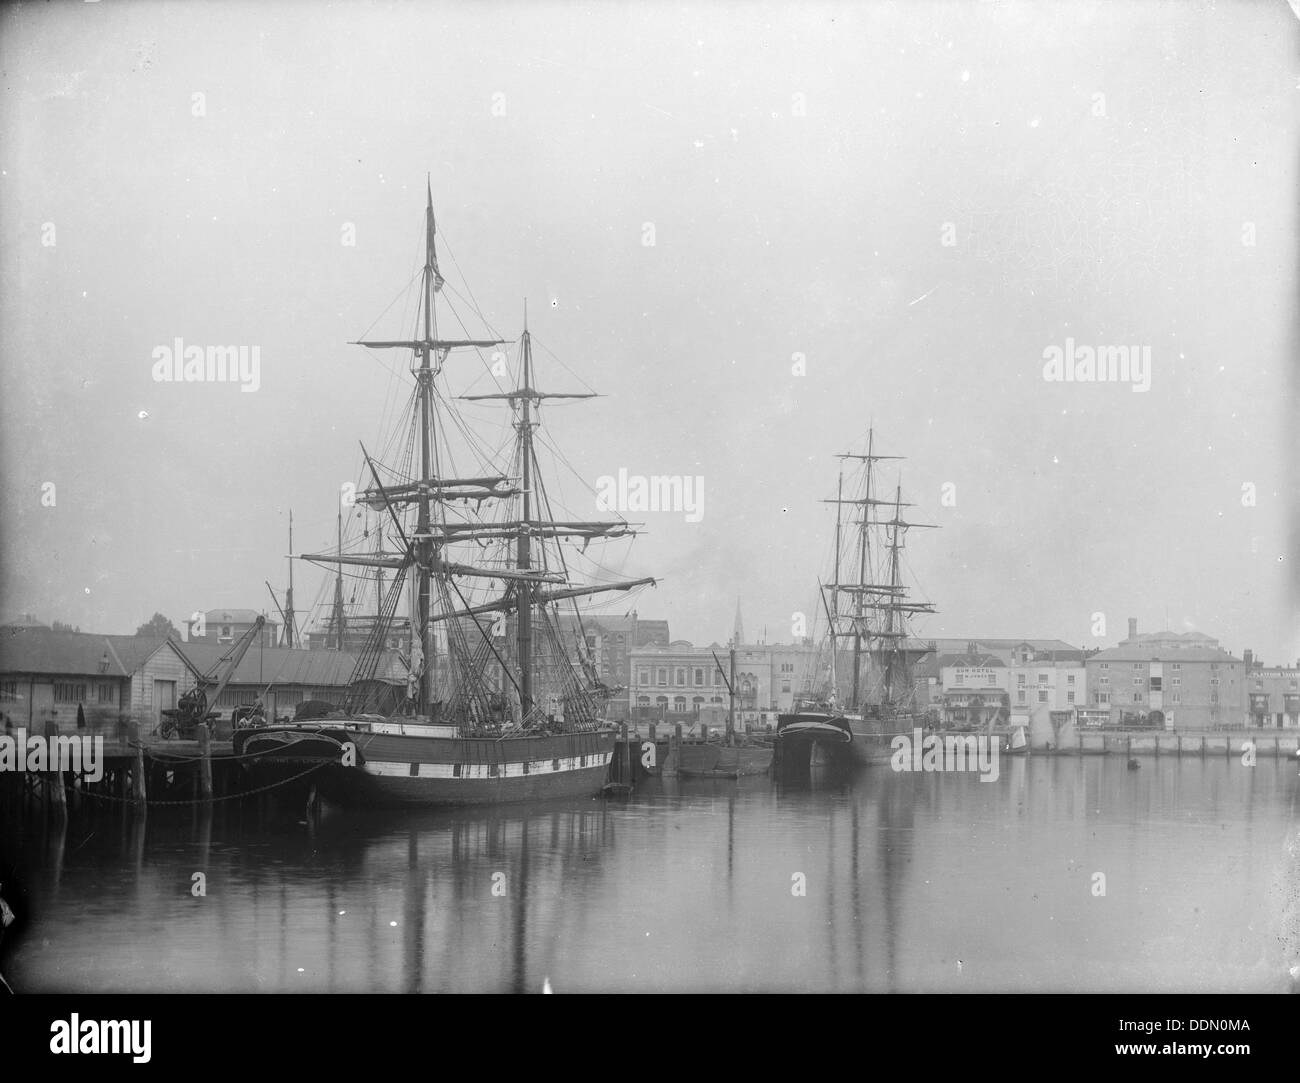 Two sailing ships, Southampton, Hampshire, 1878. Artist: Henry Taunt - Stock Image